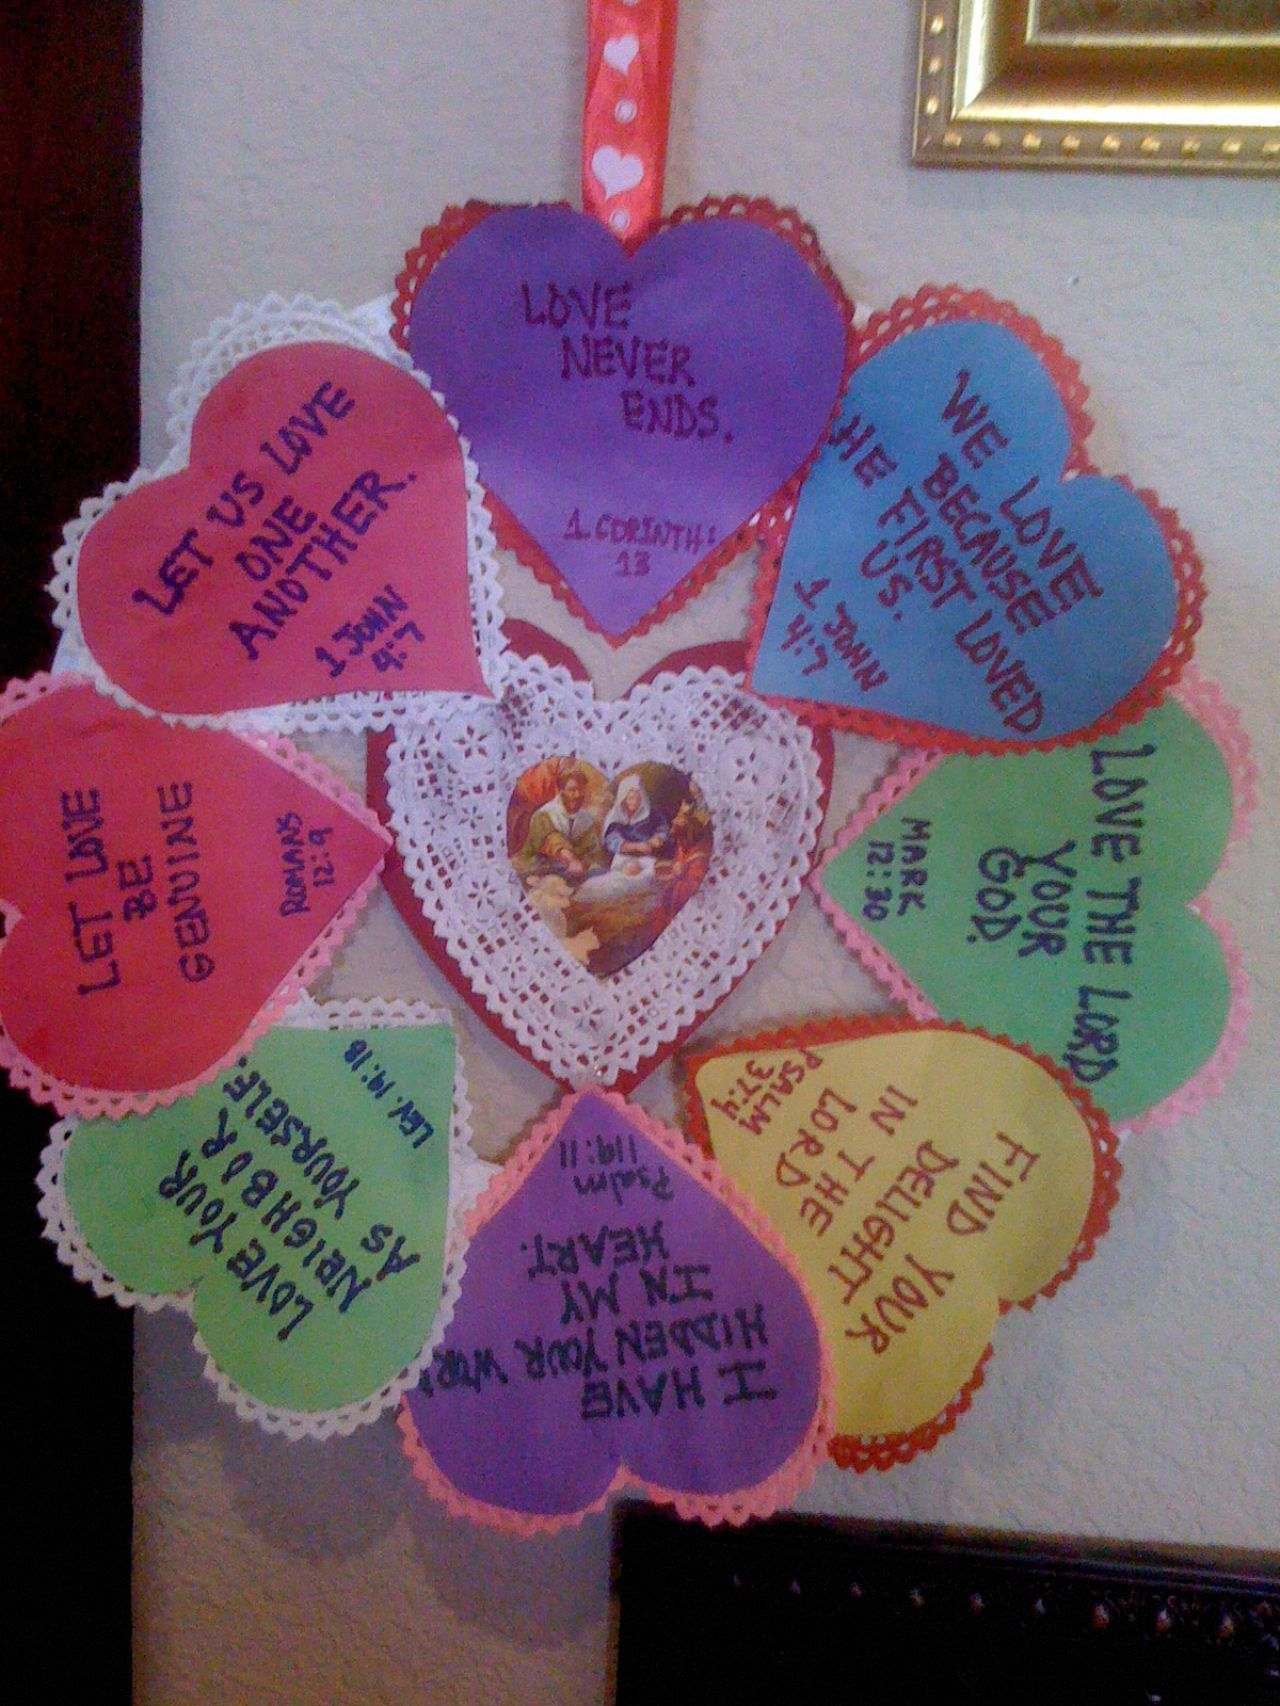 11 most creative christian valentines day gallery - Christian Valentine Crafts